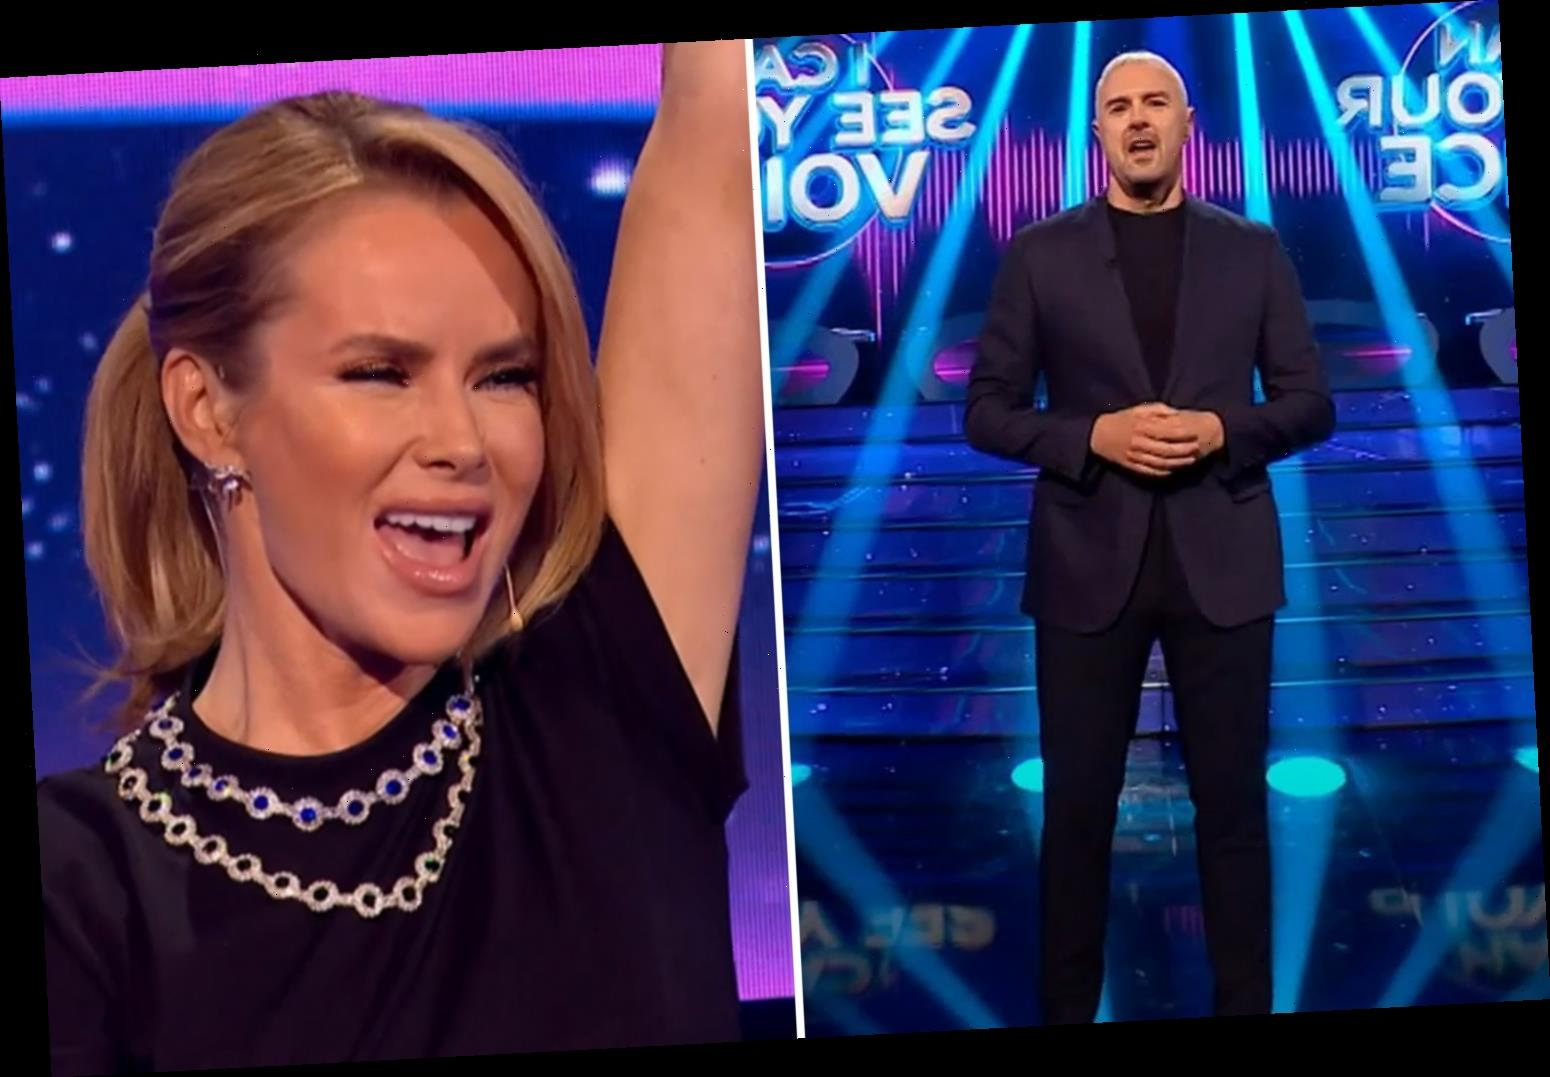 Amanda Holden and Paddy McGuinness to front hilarious new BBC talent show I Can See Your Voice